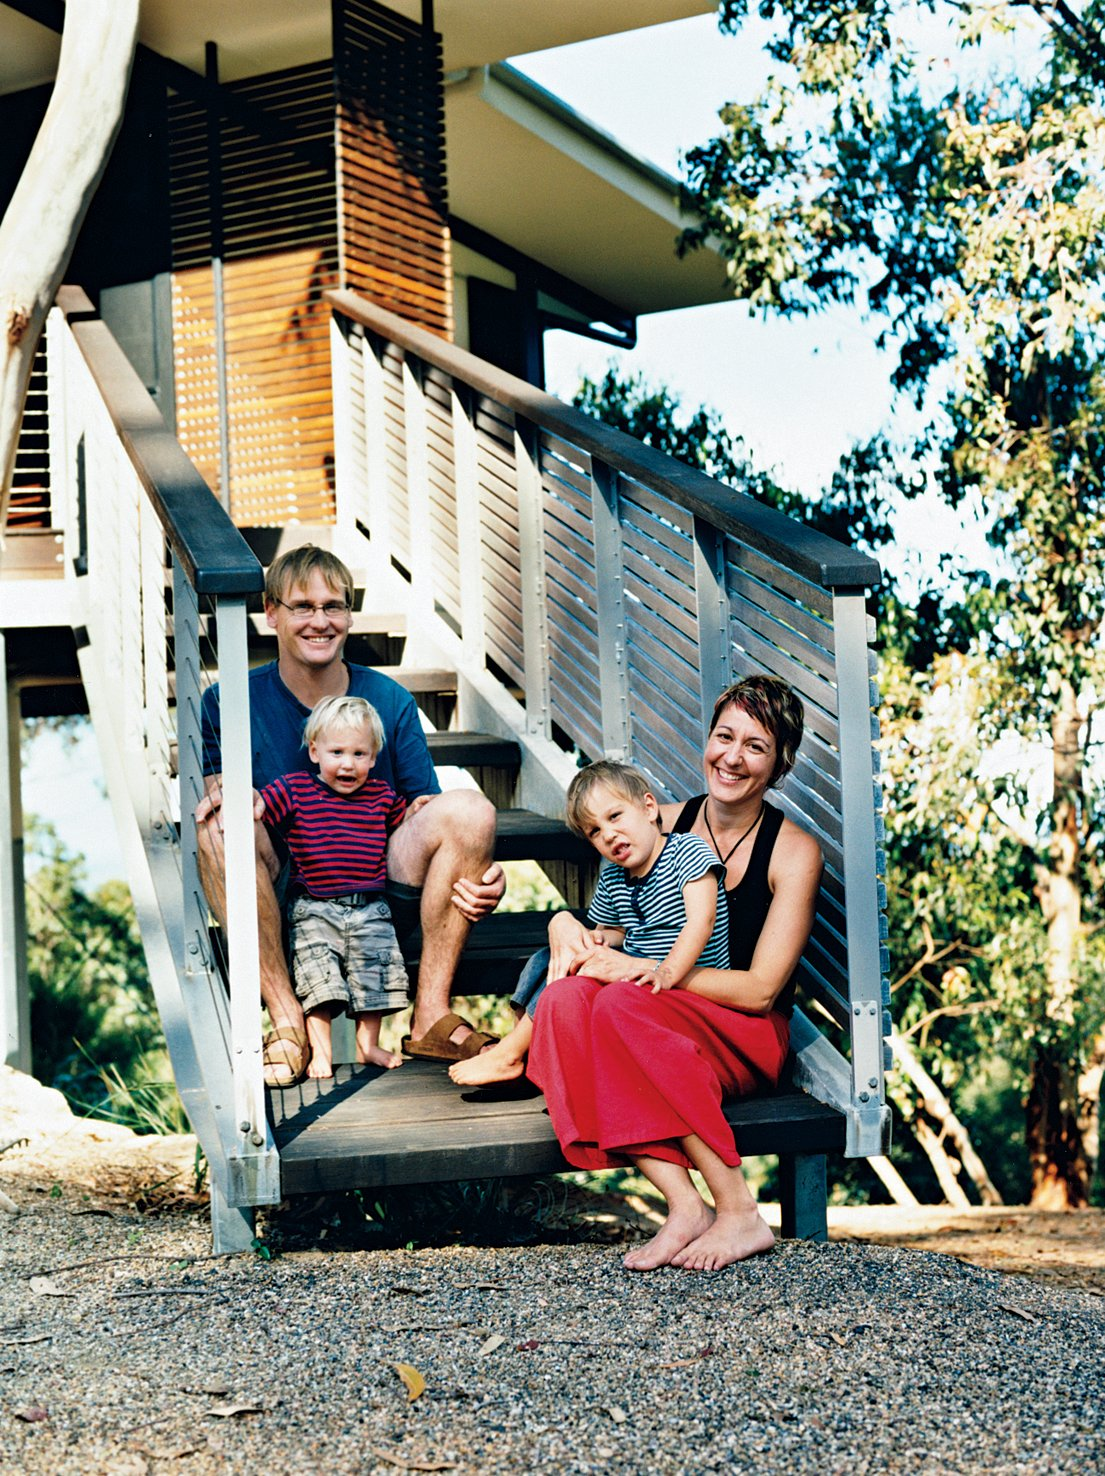 Stefan Dunlop and Adrienne Webb repose on their front entrance stairs with their sons Keanu and Kobe. Tagged: Staircase.  Photo 3 of 12 in Hillside Family Home in Australia